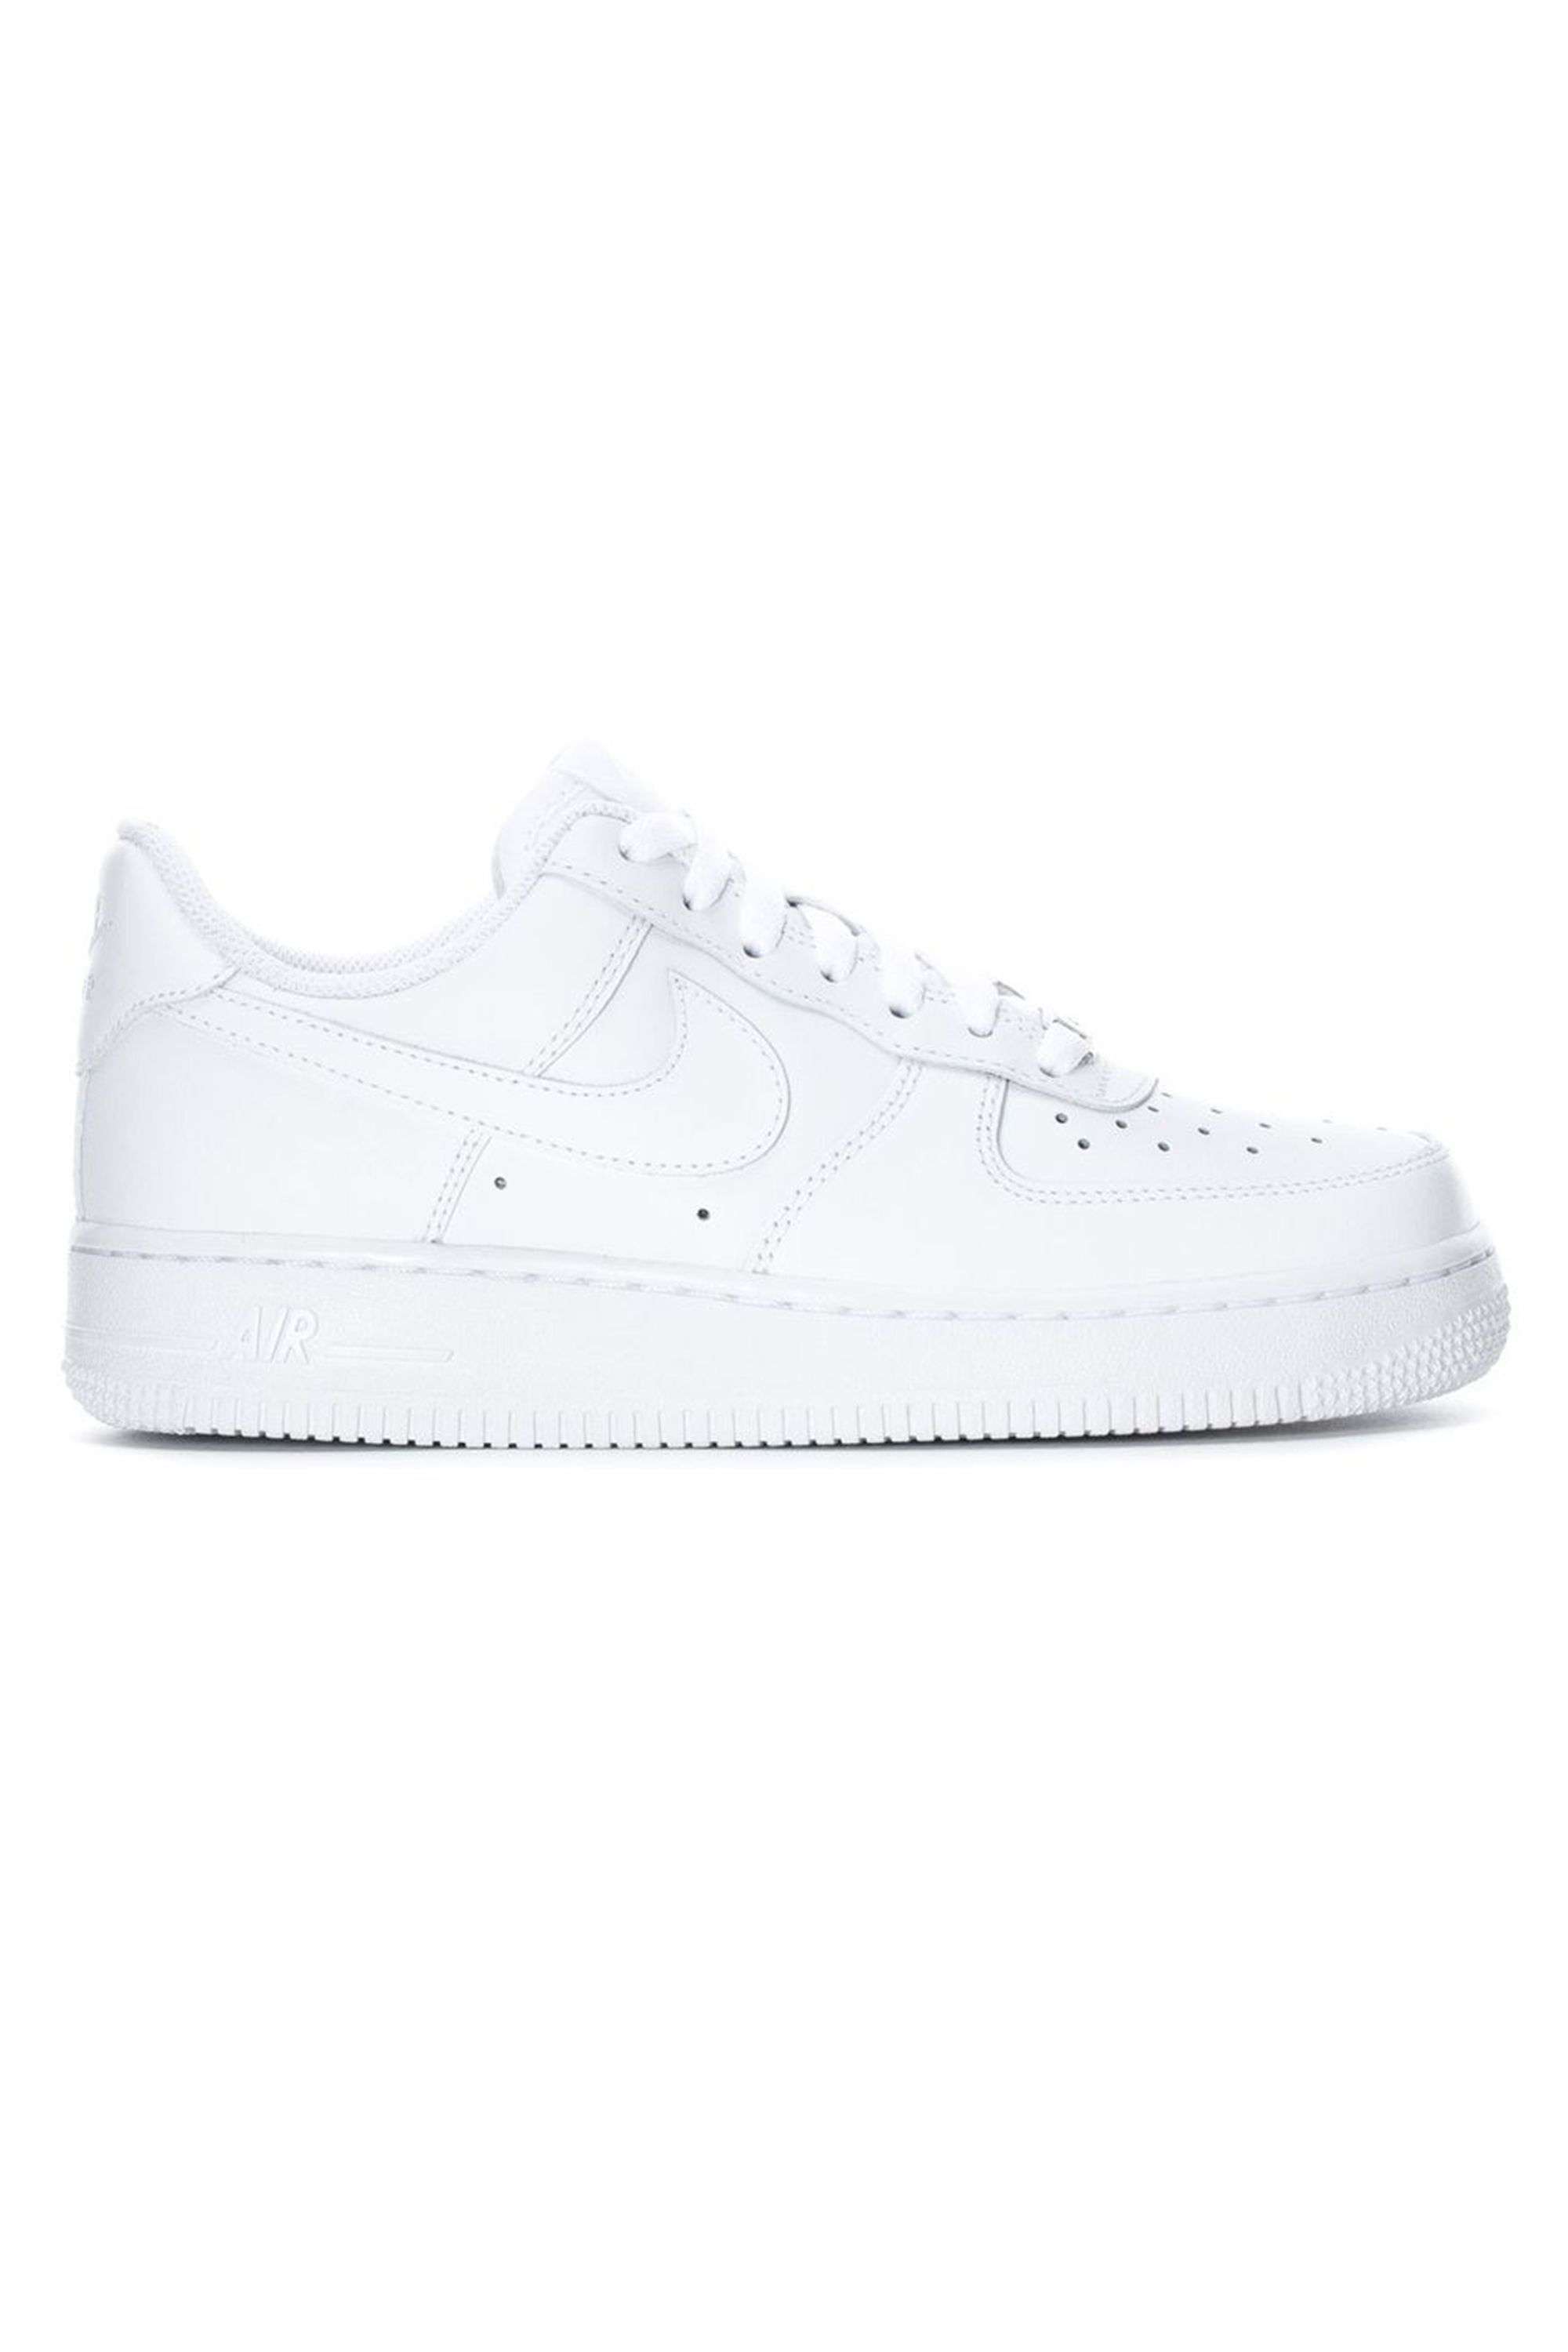 17 Best White Sneakers for 2019 , Classic White Shoes That